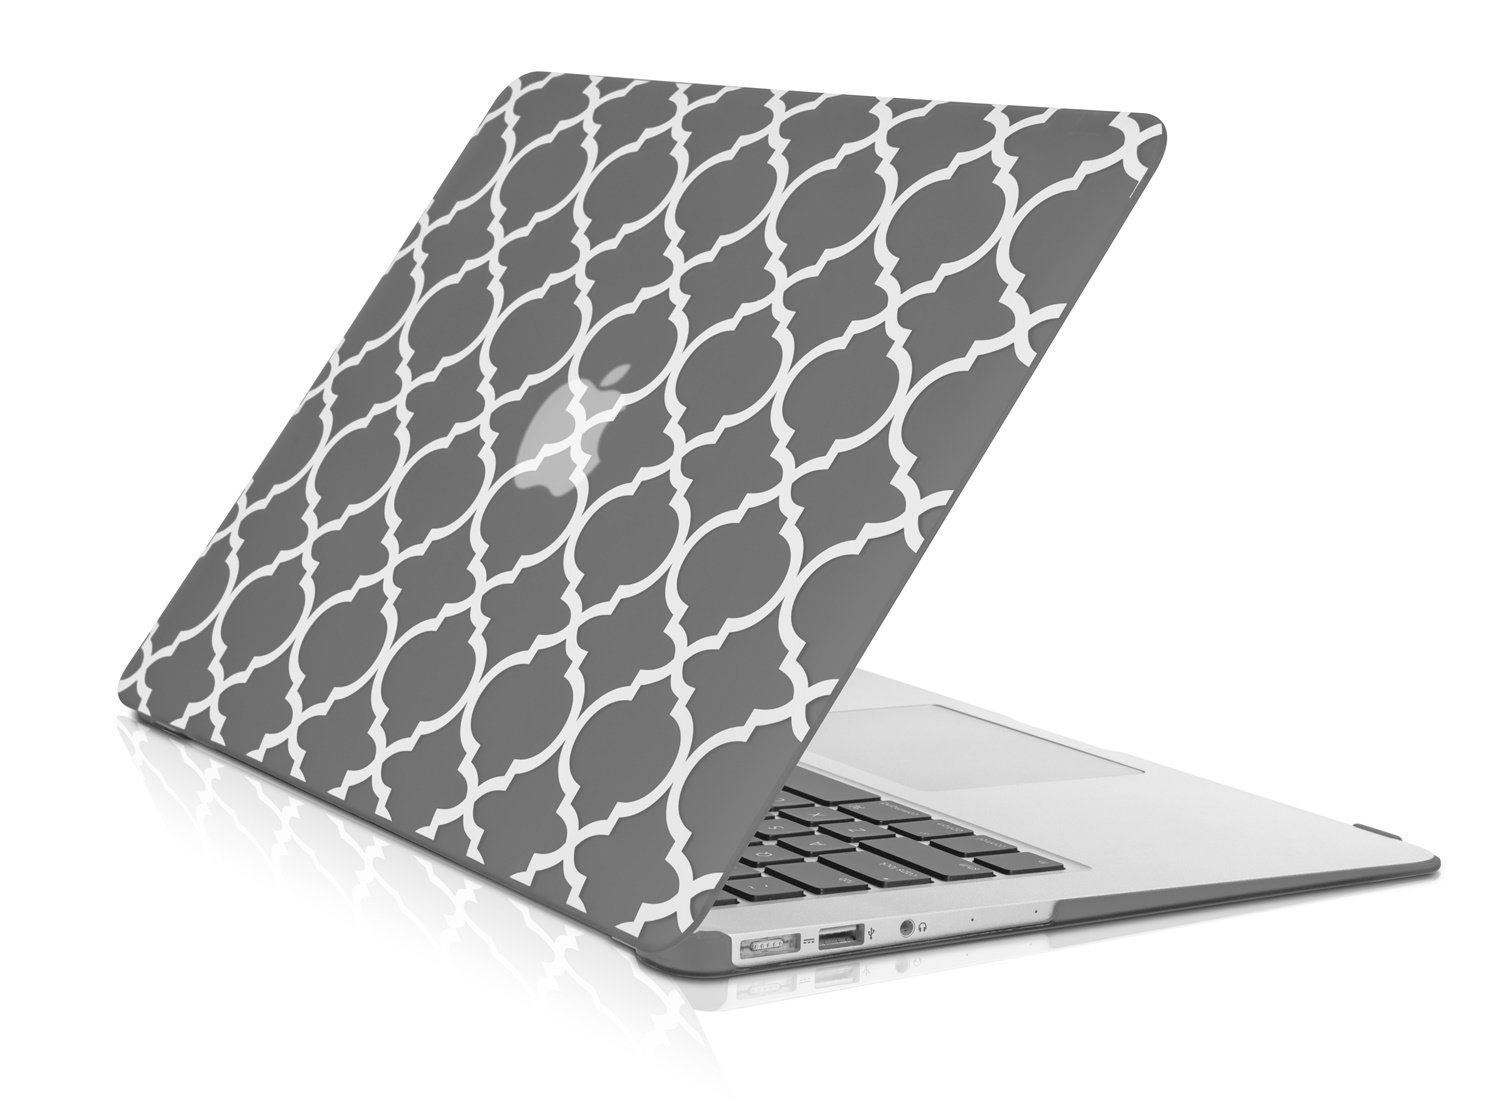 TopCase Quatrefoil/Moroccan Trellis Gray Ultra Slim Light Weight Rubberized Hard Case Cover for MacBook Air 11'' Model: A1370 and A1465 by TOP CASE (Image #1)